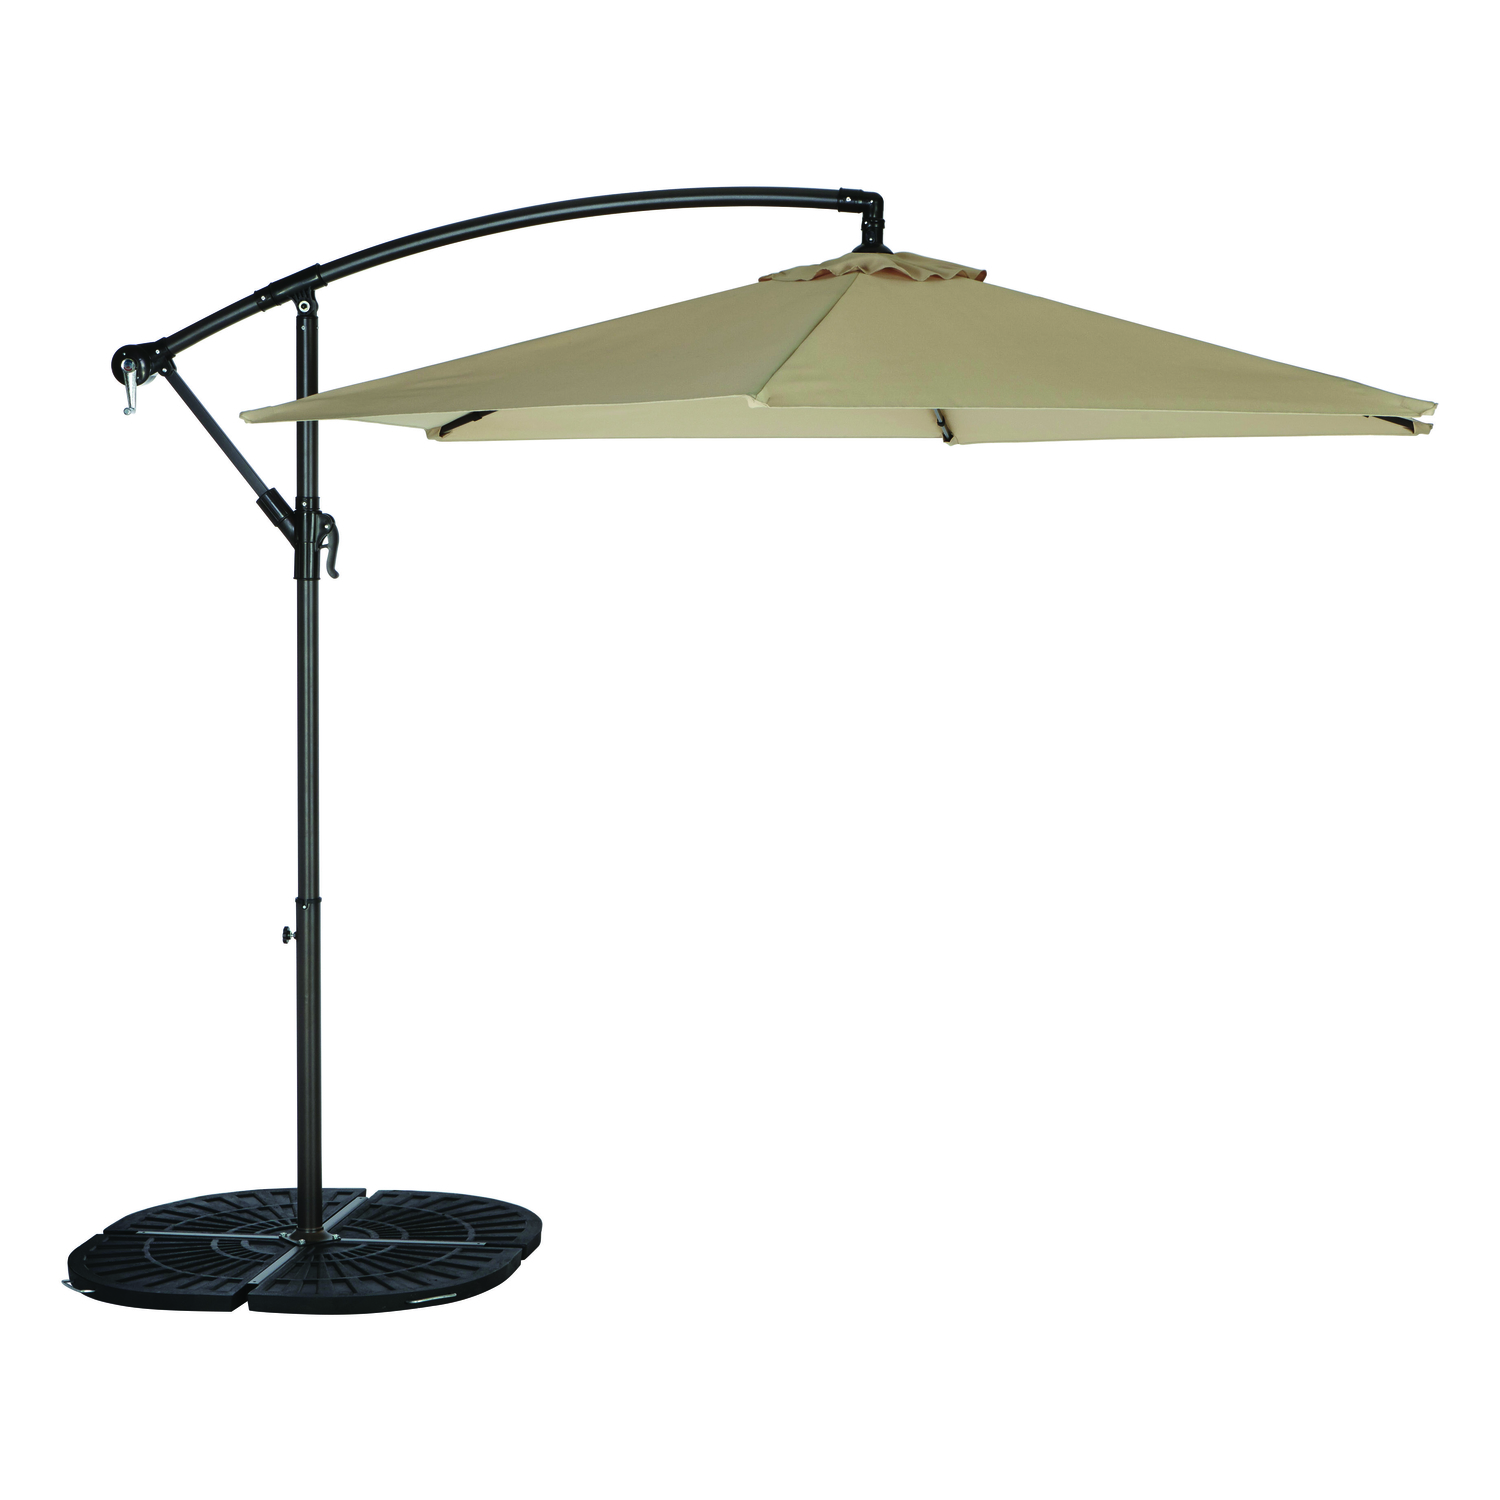 Tiltable Taupe Patio Umbrella - Living Accents Offset 9 Ft. Tiltable Taupe Patio Umbrella - Ace Hardware